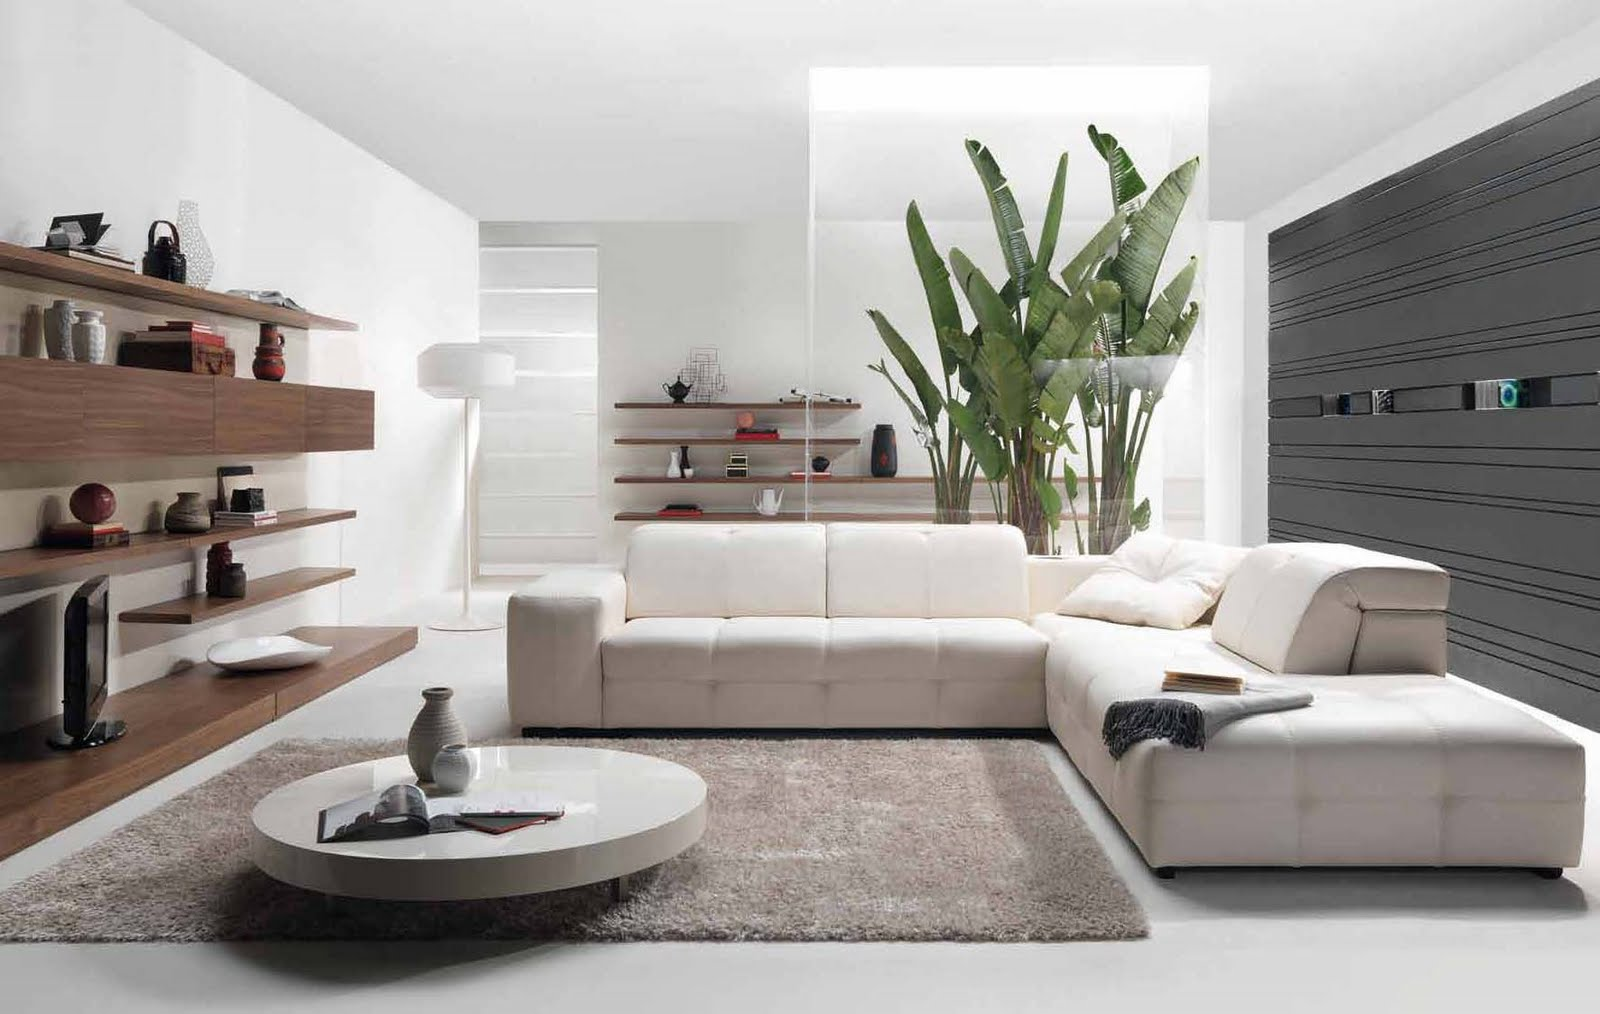 Future house design modern living room interior design for Living room interior video